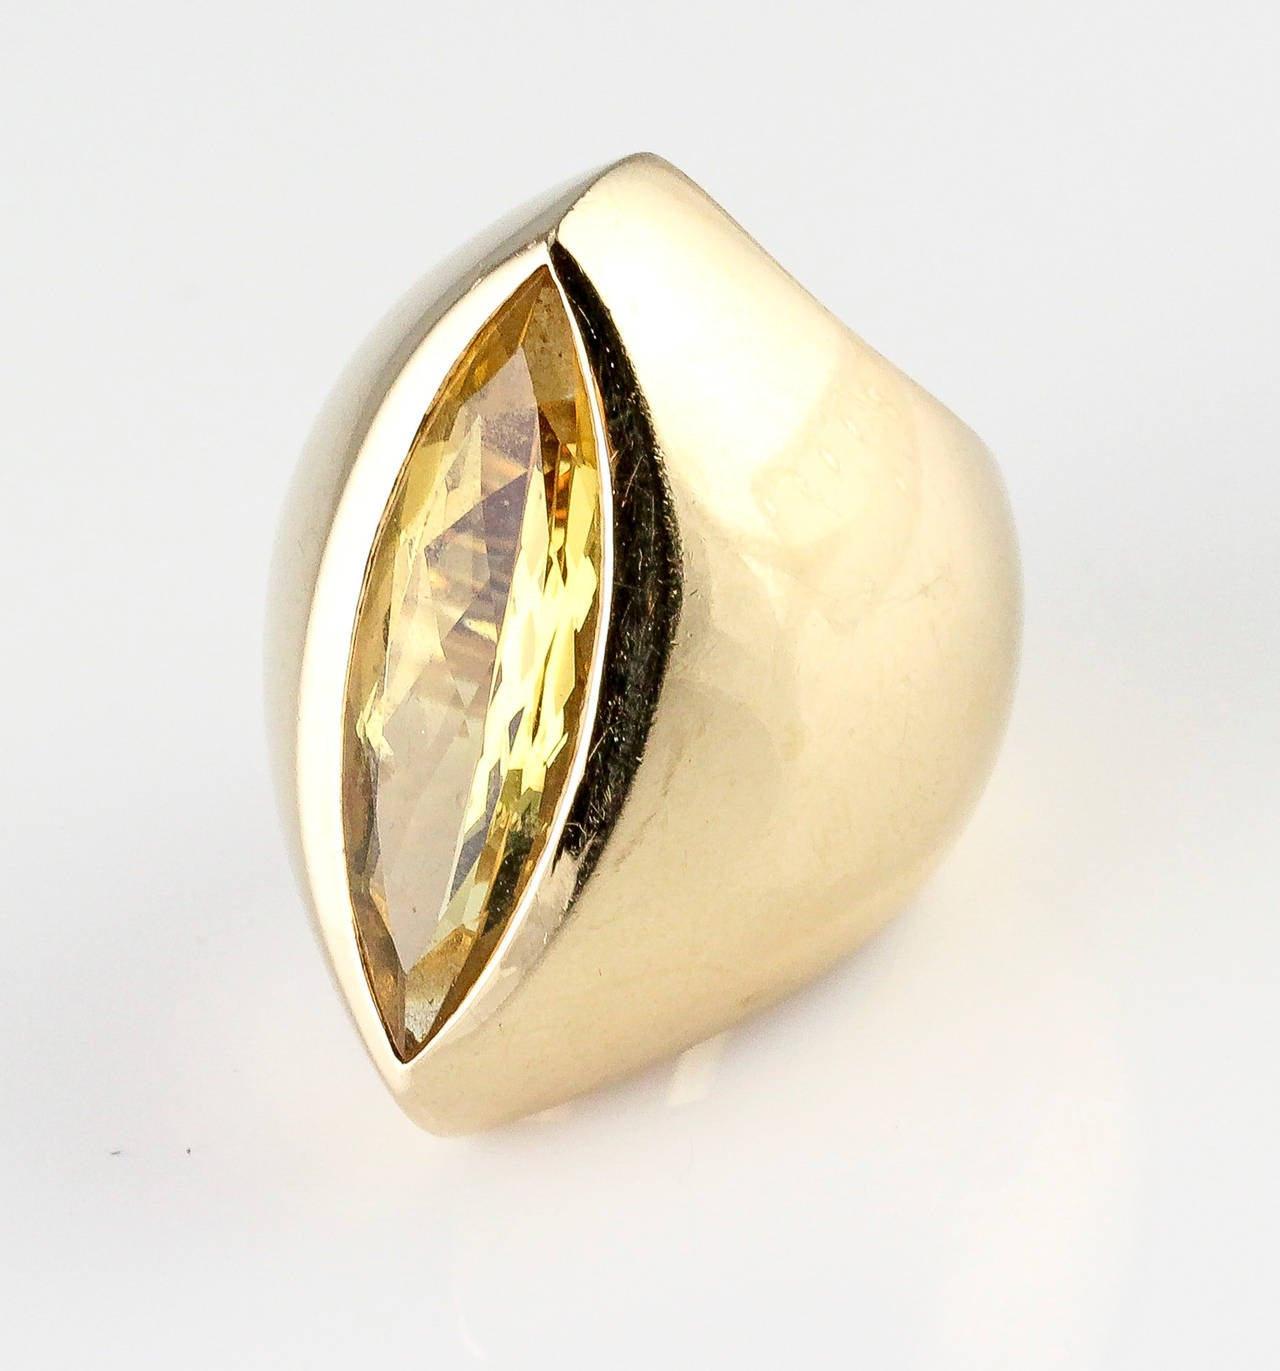 j frach beryl gold wide ring for sale at 1stdibs